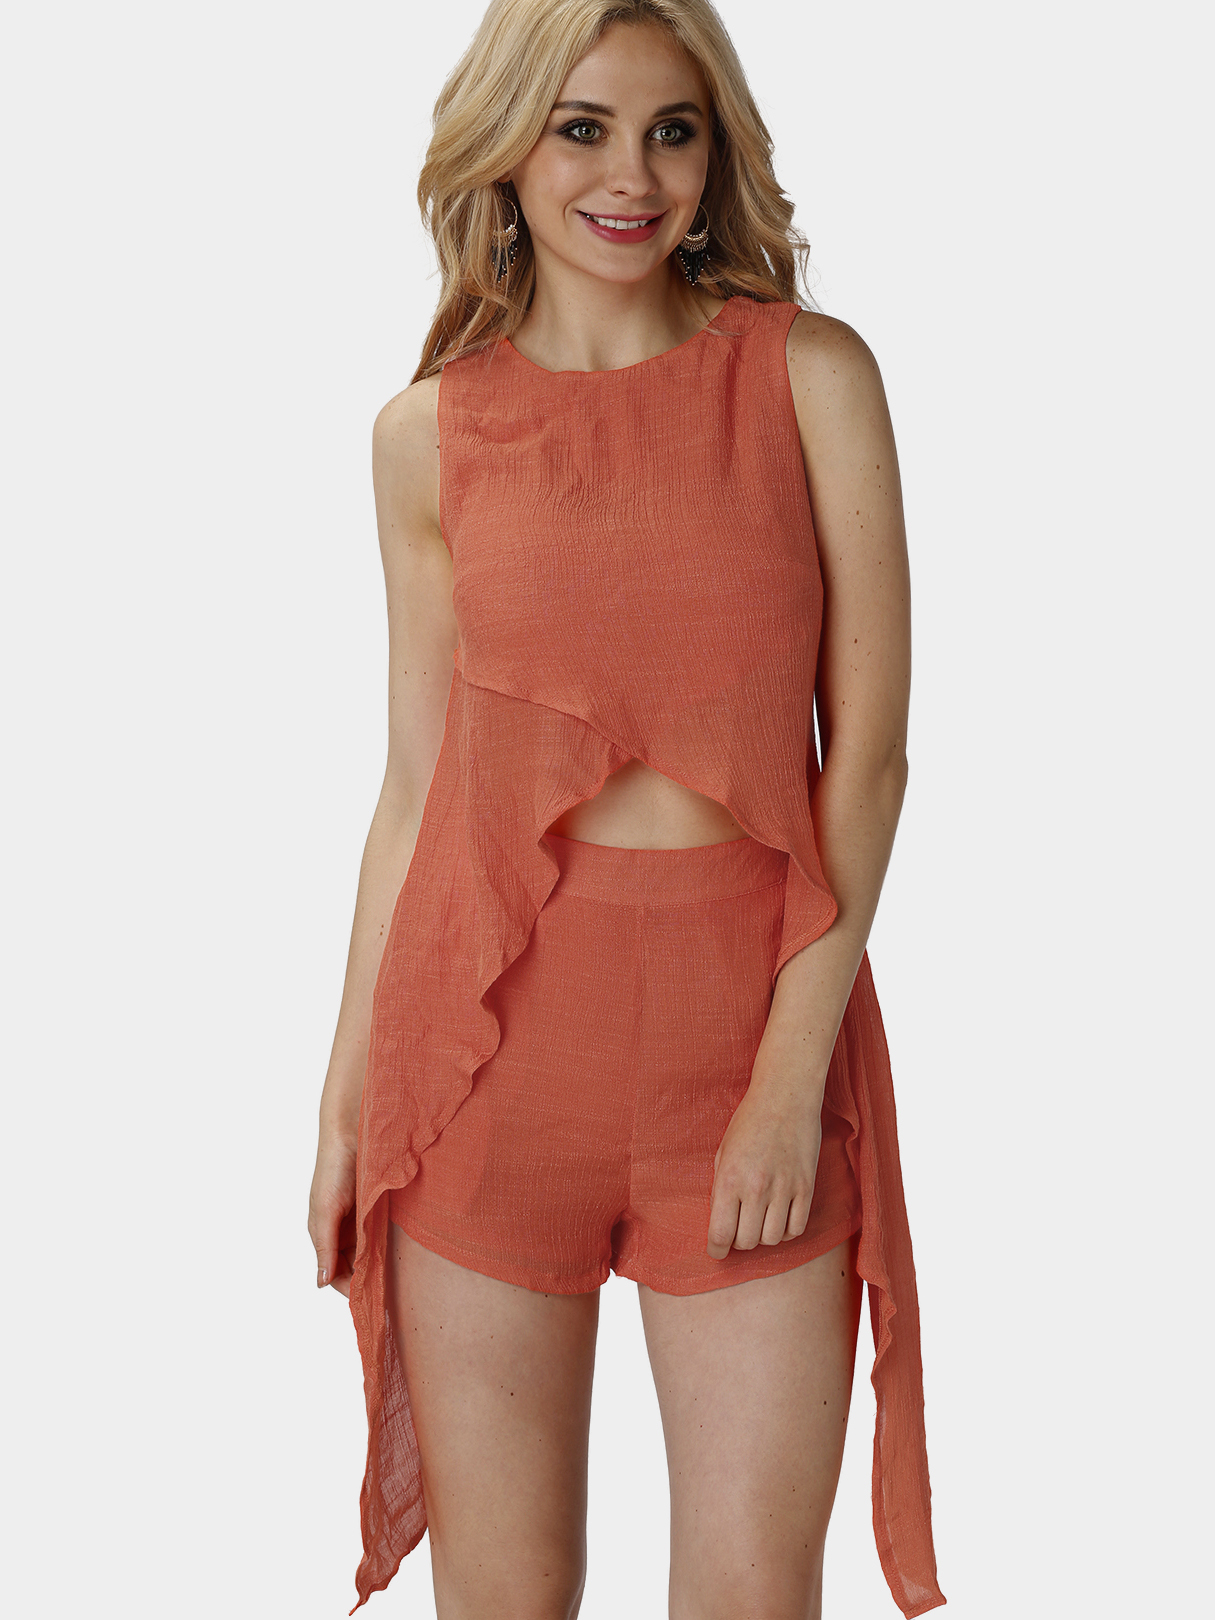 Orange Sleeveless Convertible Two Piece Outfits